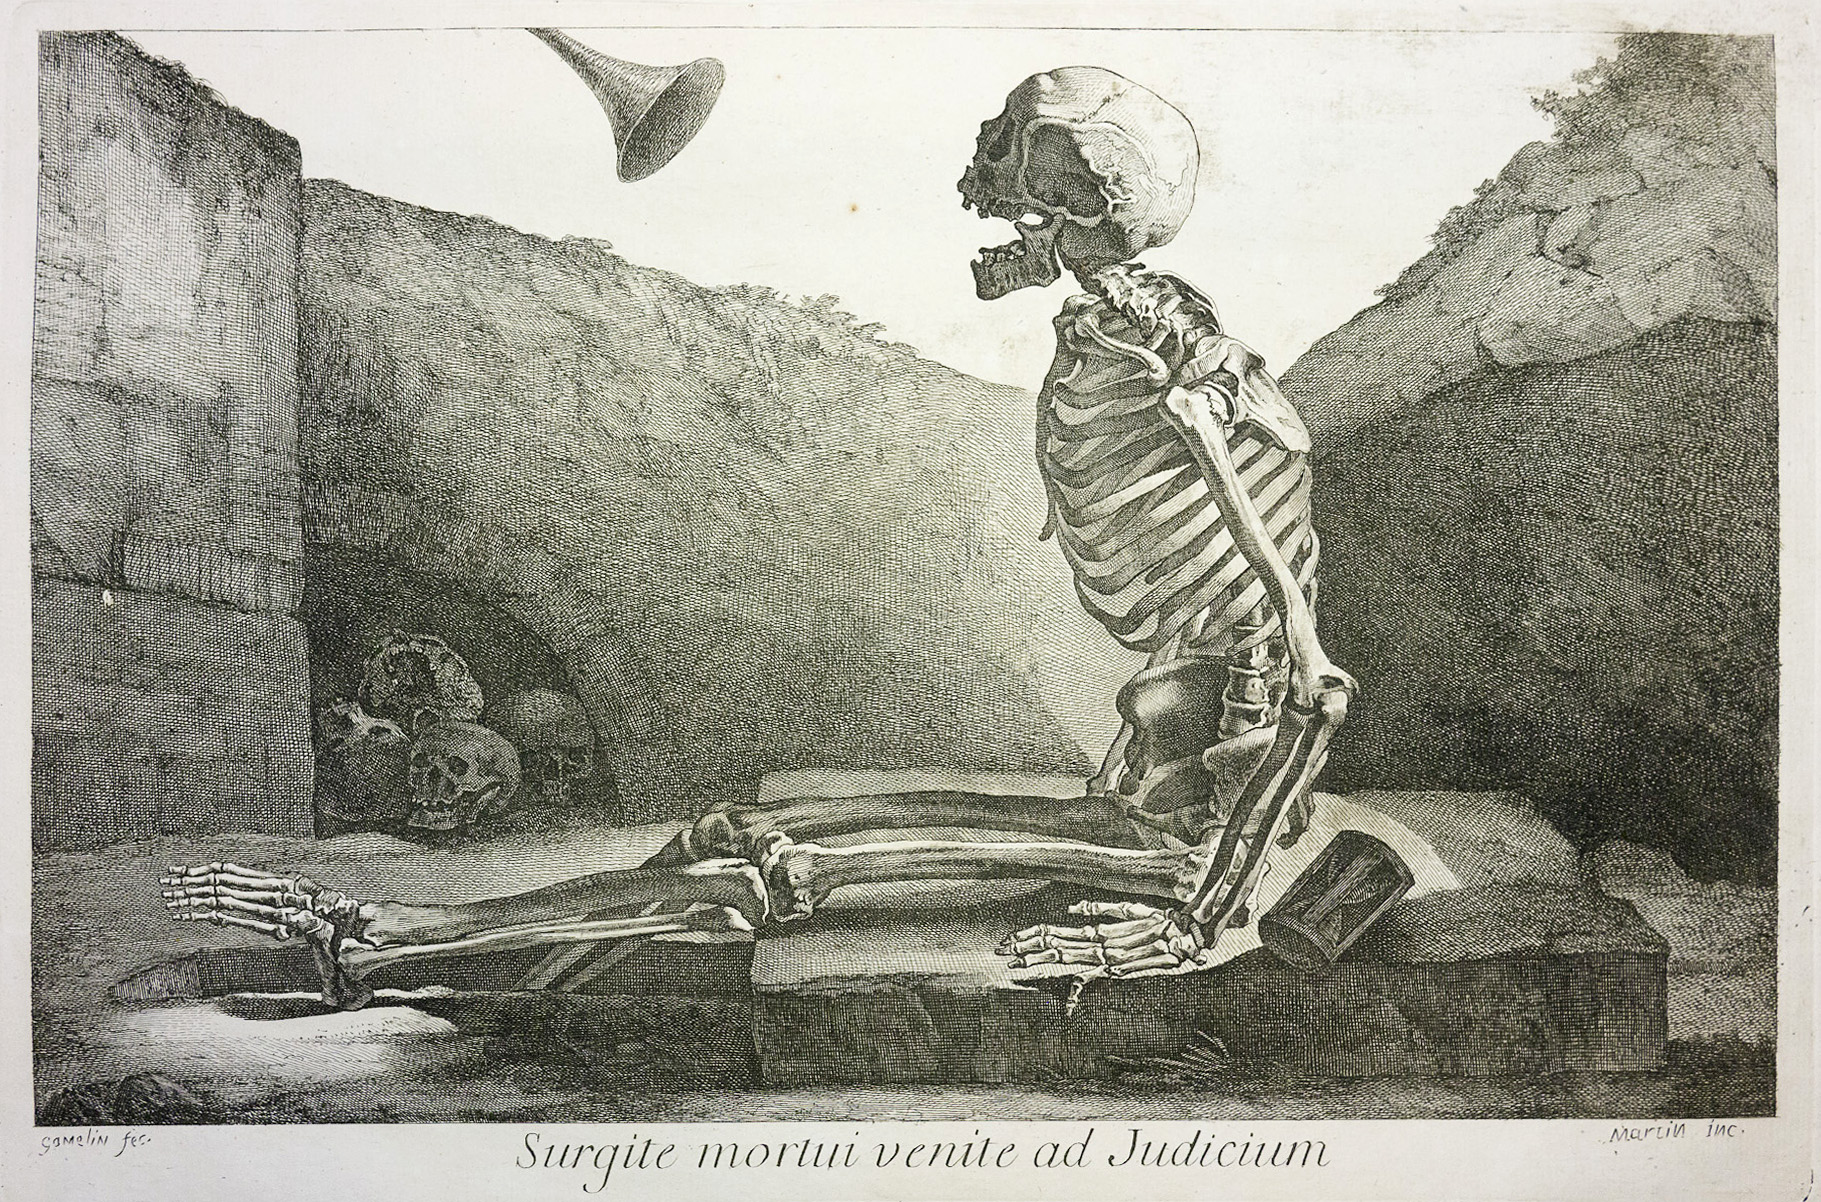 Jacques Gamelin's Marauding Skeletons and Écorché ...